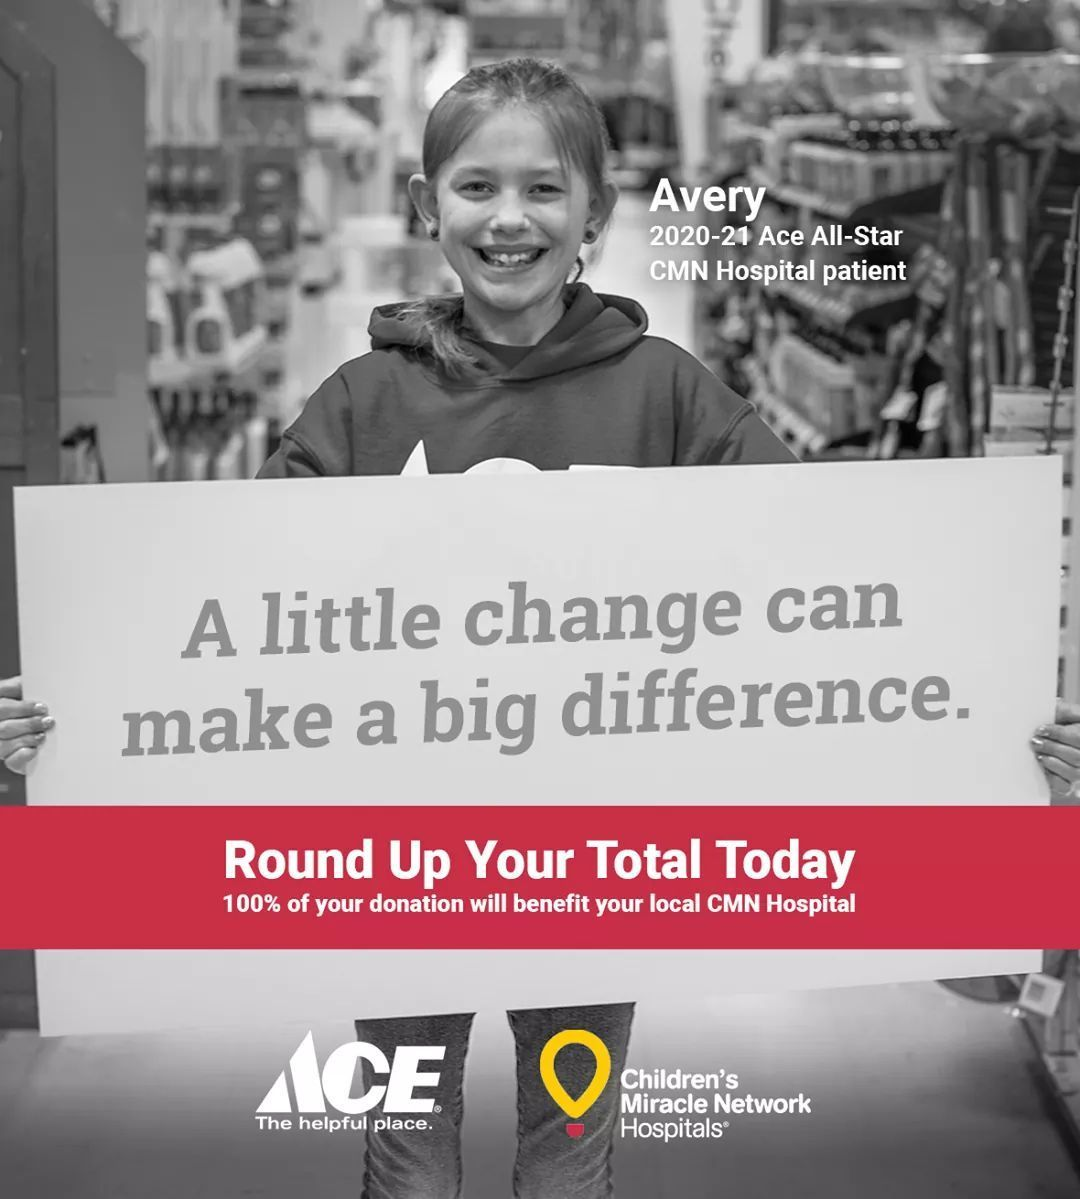 Round up your total to the nearest dollar at participating Ace stores in April, and 100% of the change will be donated to the local Children's Miracle Network Hospital. A little change can make a BIG impact for kids in your community! thumbnail